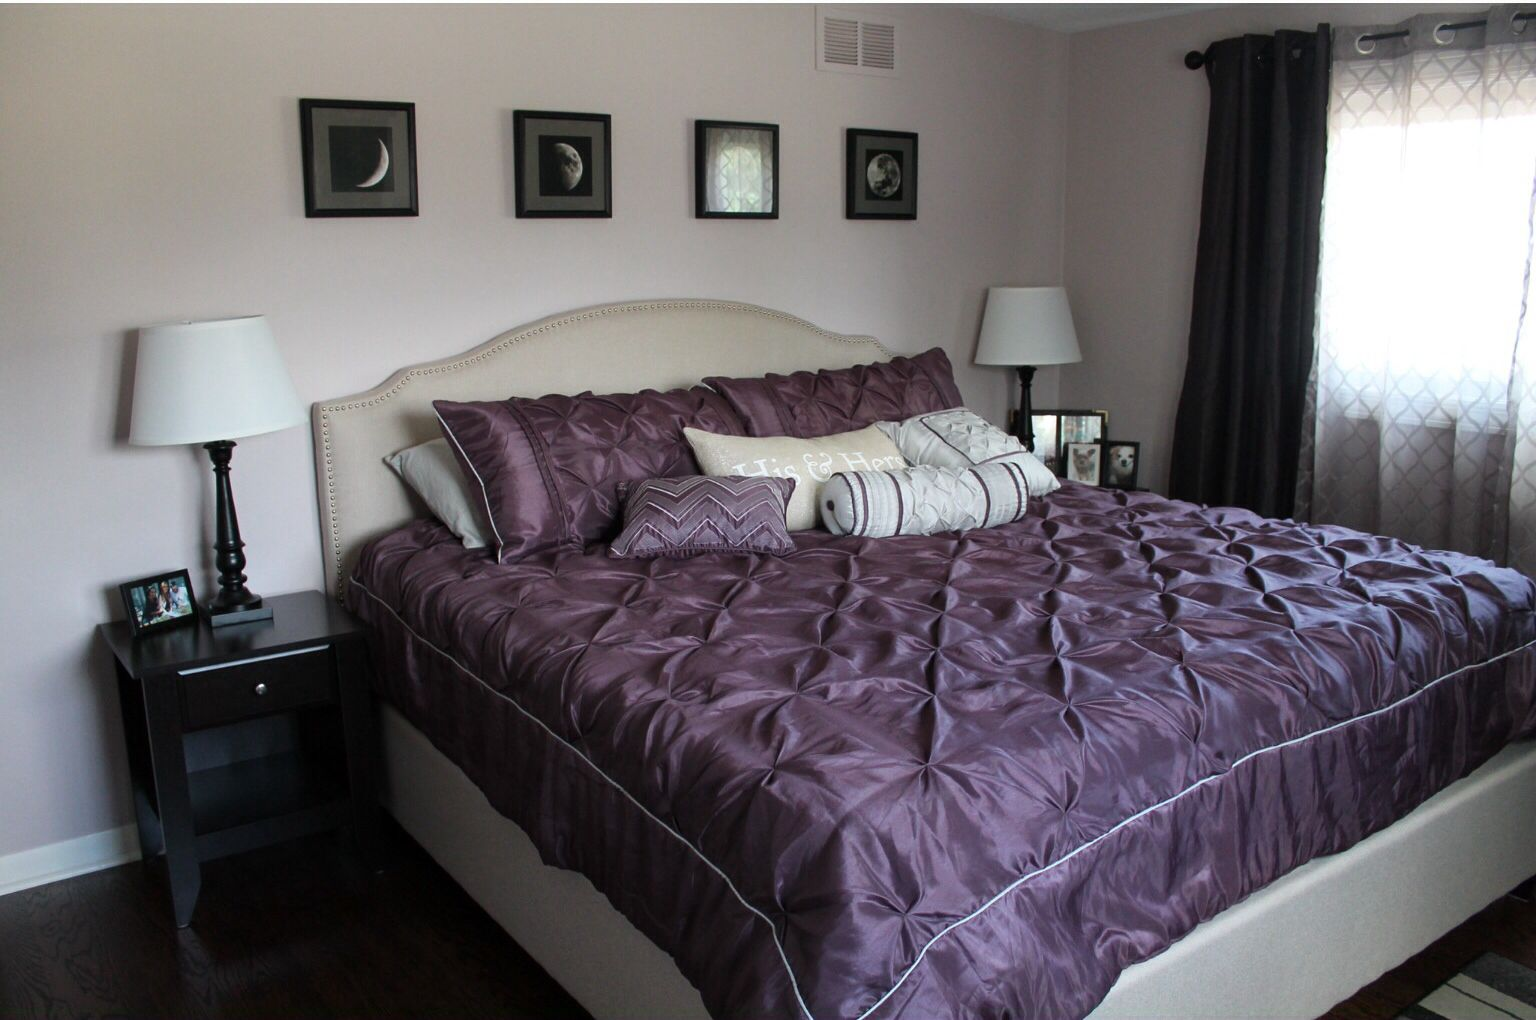 Vaguely Mauve By Sherwin Williams In Bedroom. Eggplant Purple Bedding